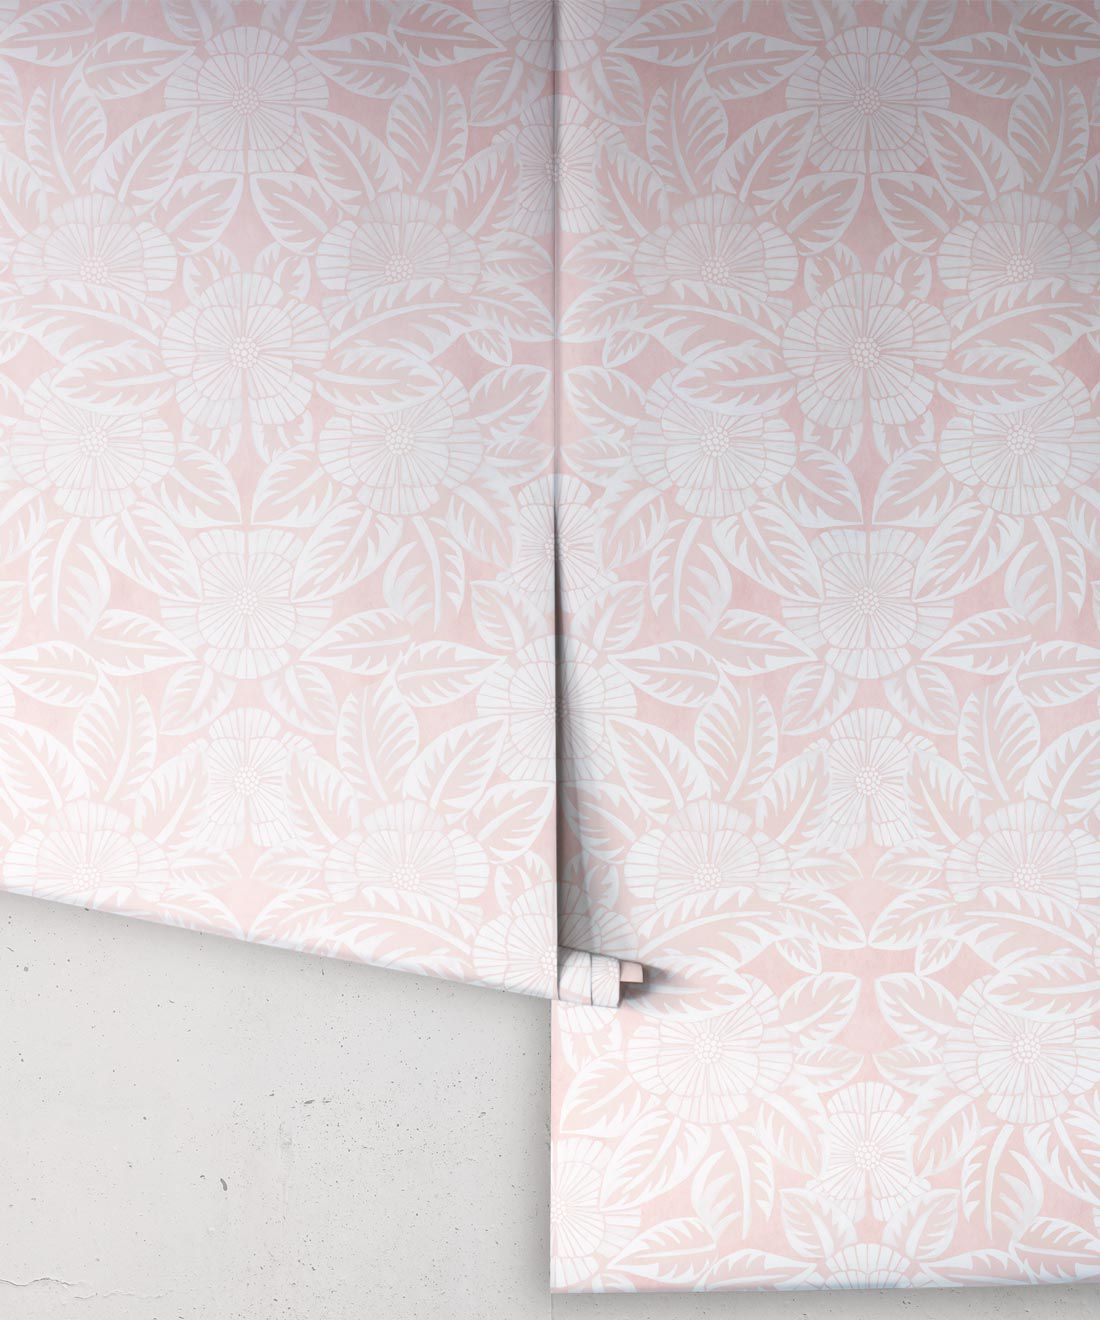 Calcutta Wallpaper • Flower and Leaf Motif Design • Ethnic Wallpaper • Pink Wallpaper • Rolls